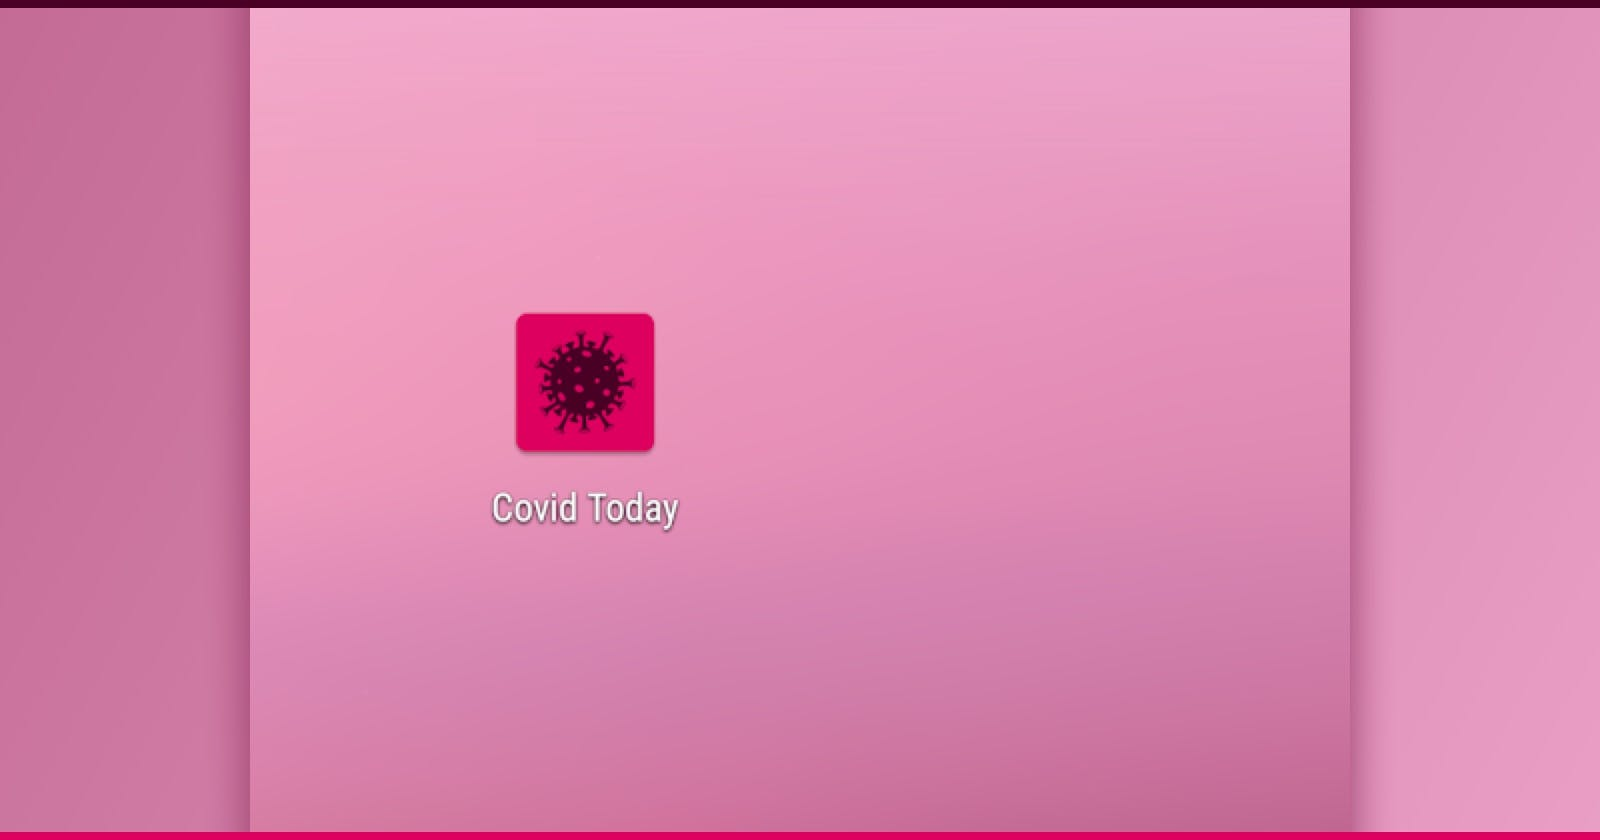 Covid Today Android app